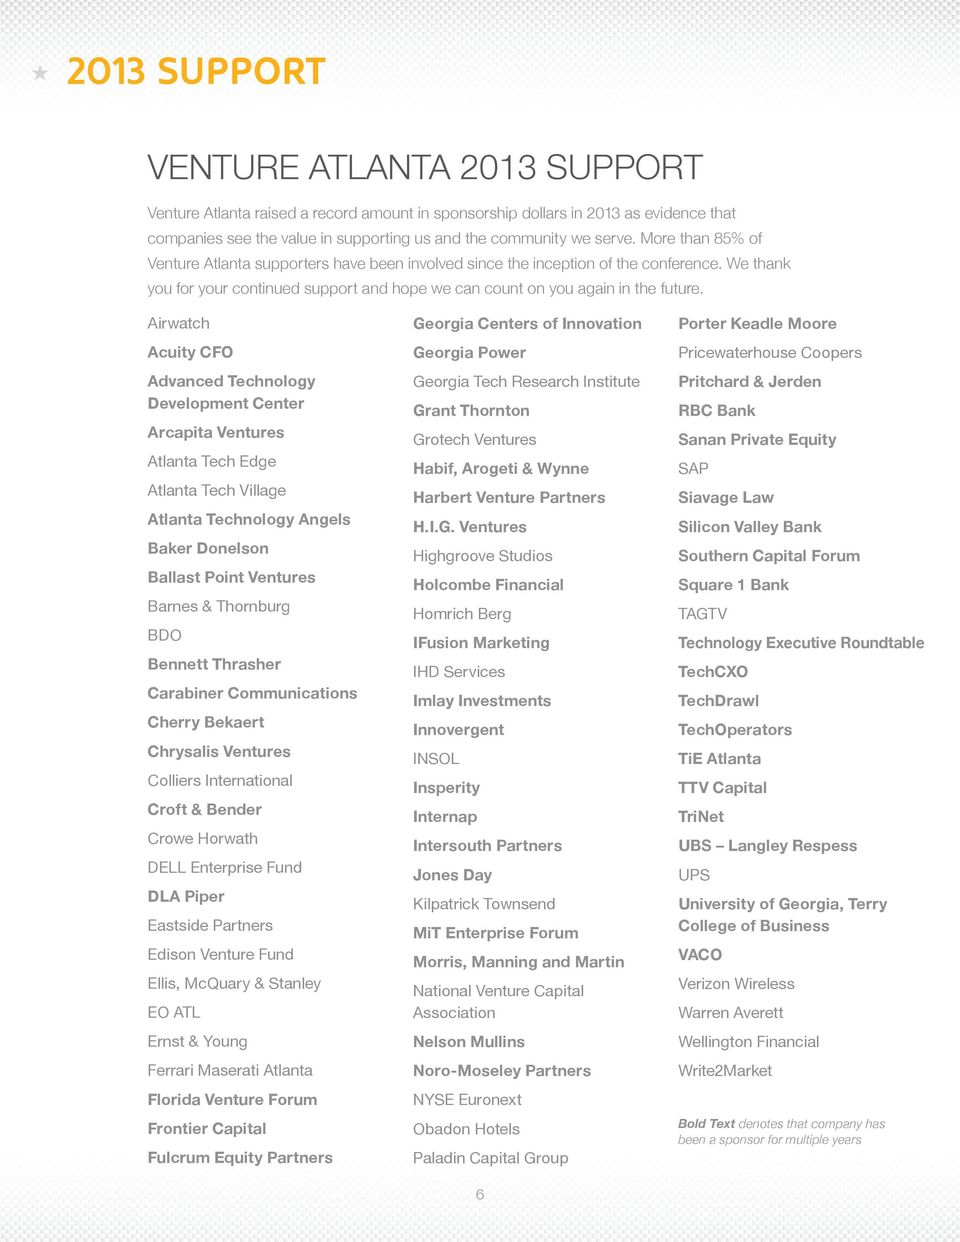 Airwatch Acuity CFO Advanced Technology Development Center Arcapita Ventures Atlanta Tech Edge Atlanta Tech Village Atlanta Technology Angels Baker Donelson Ballast Point Ventures Barnes & Thornburg